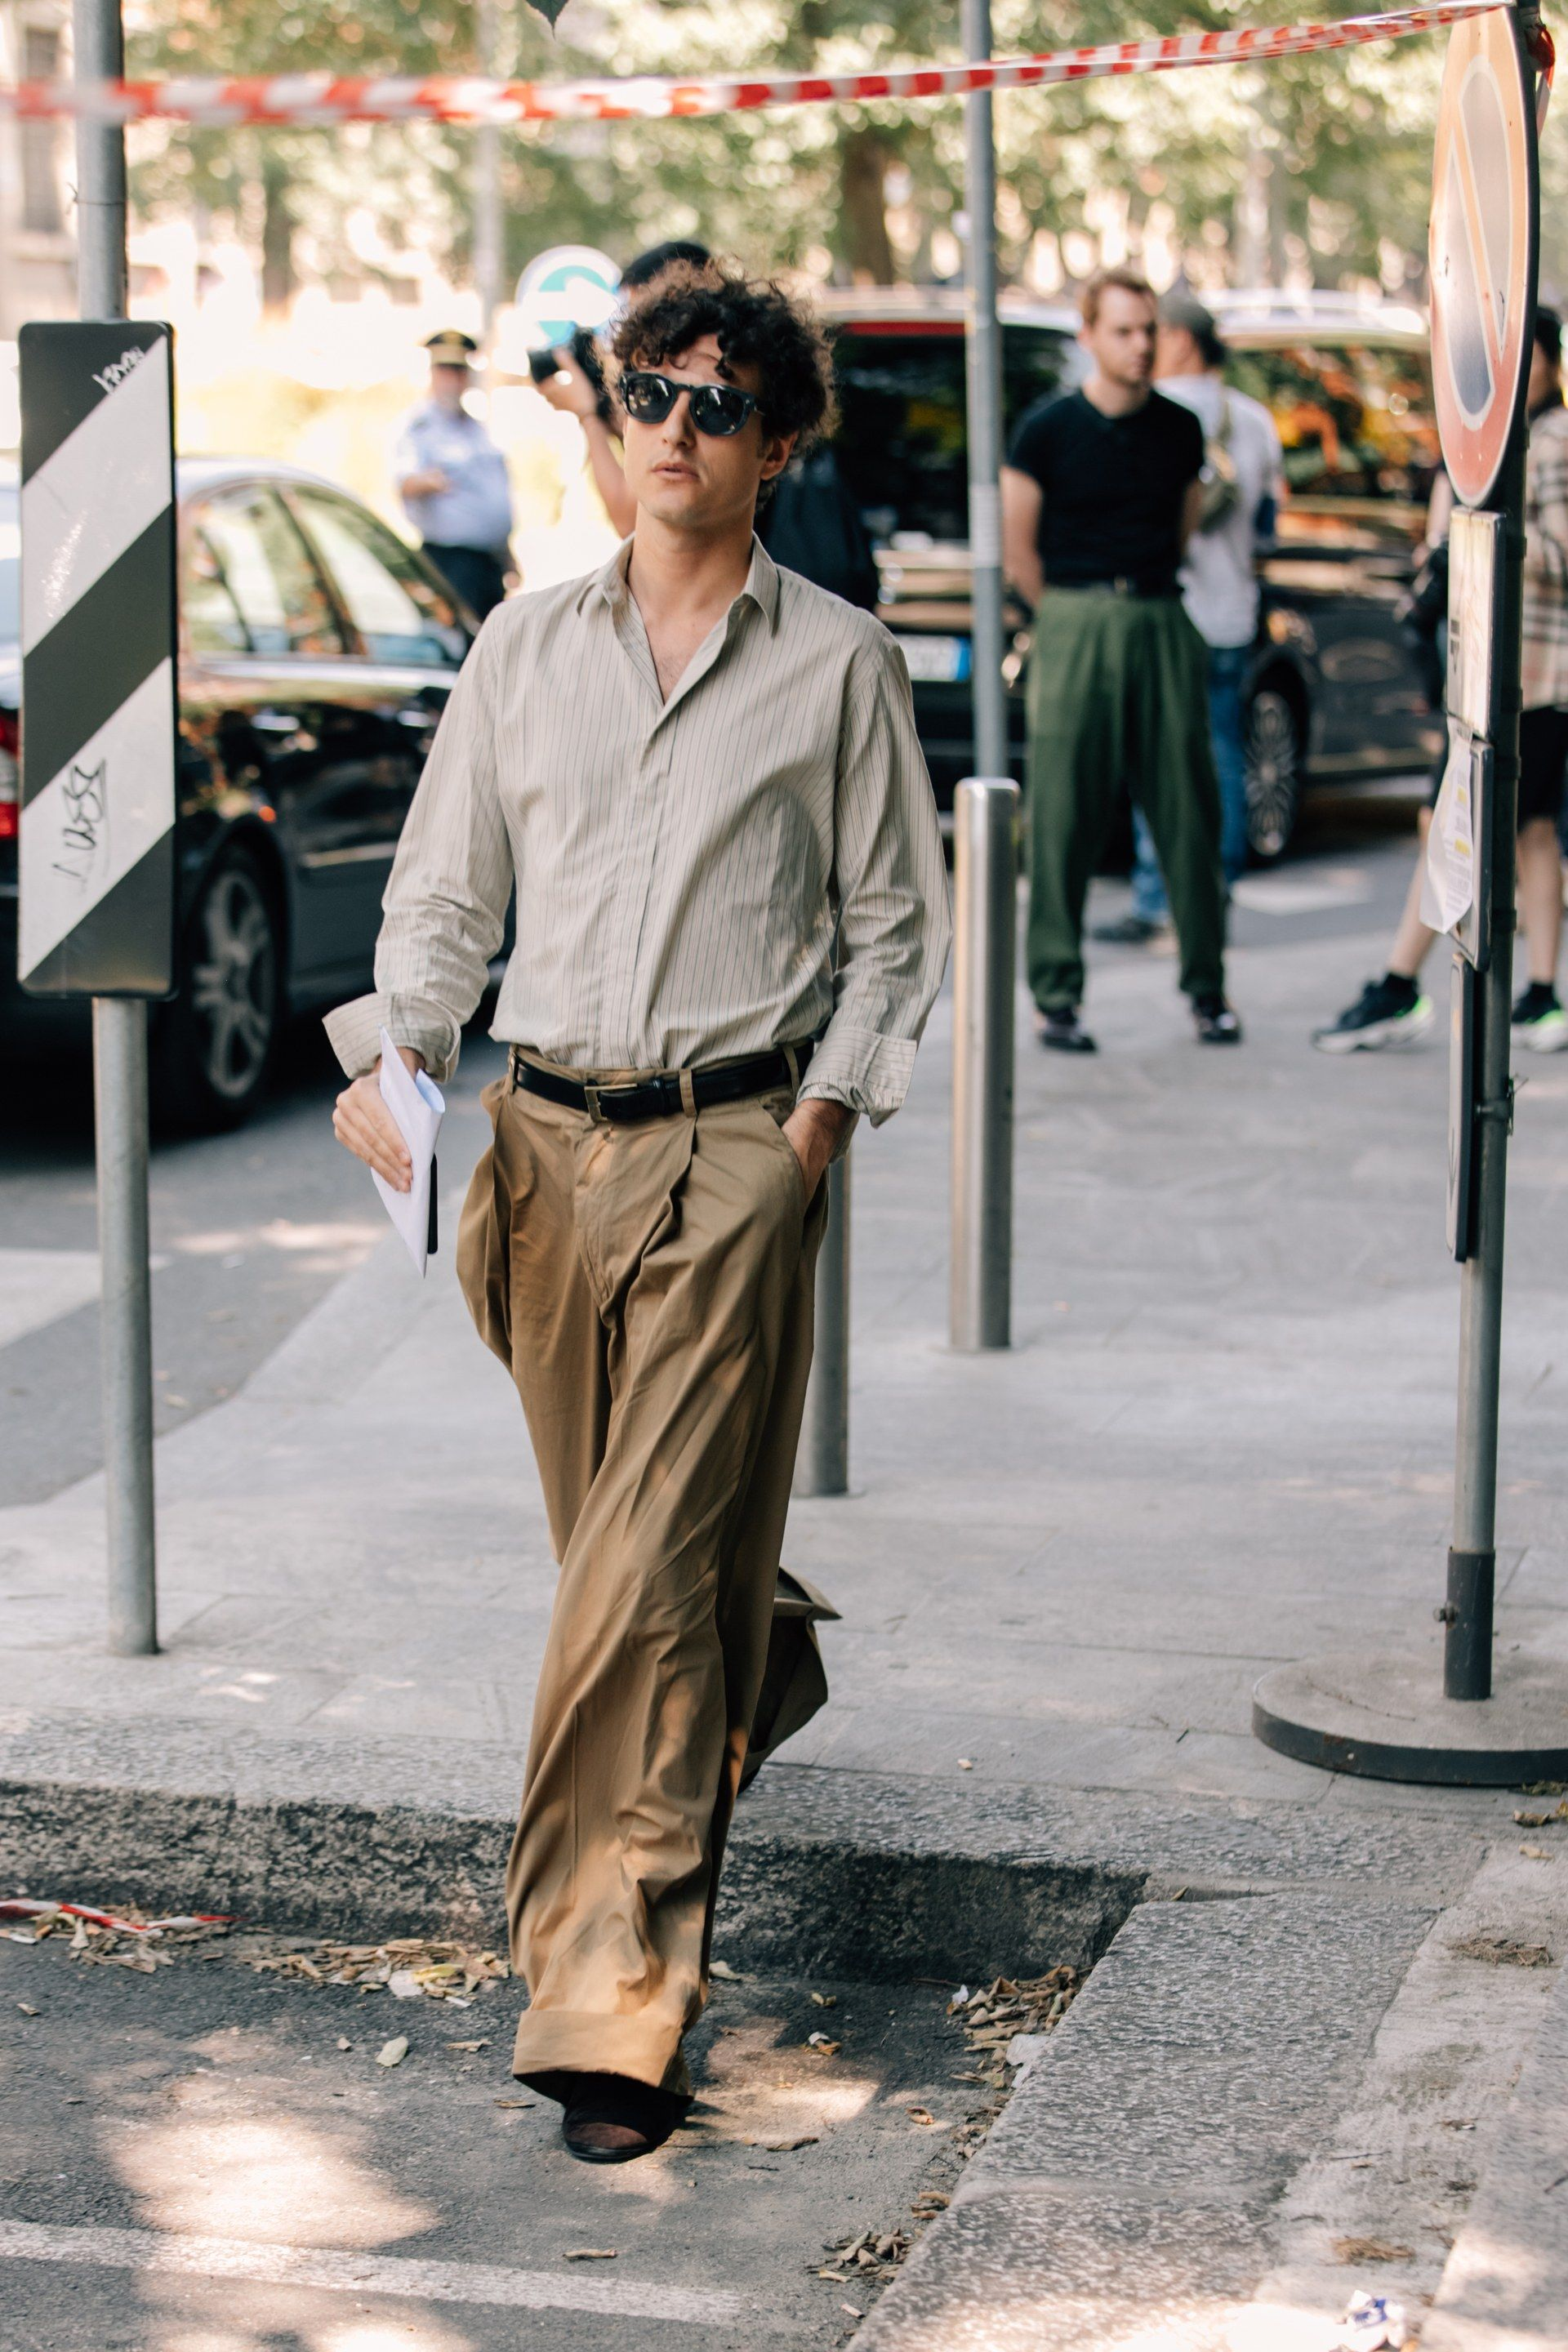 The Best Street Style from Milan Fashion Week Photos